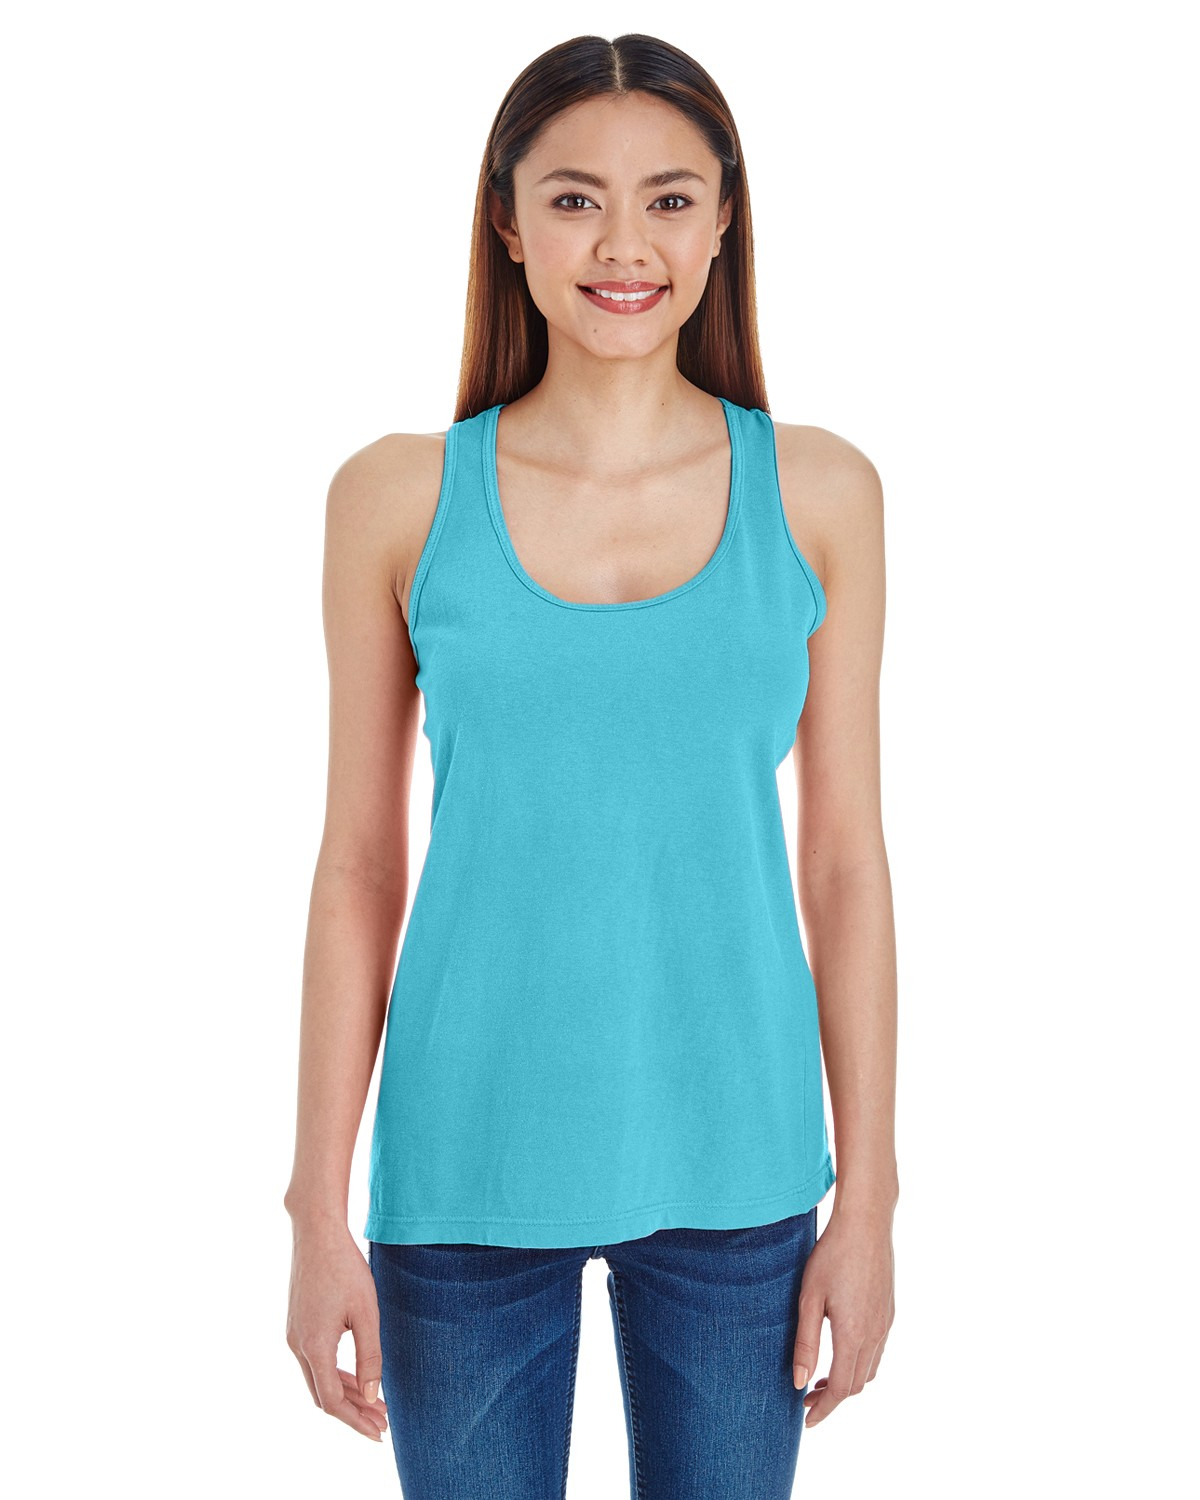 4260L Comfort Colors LAGOON BLUE